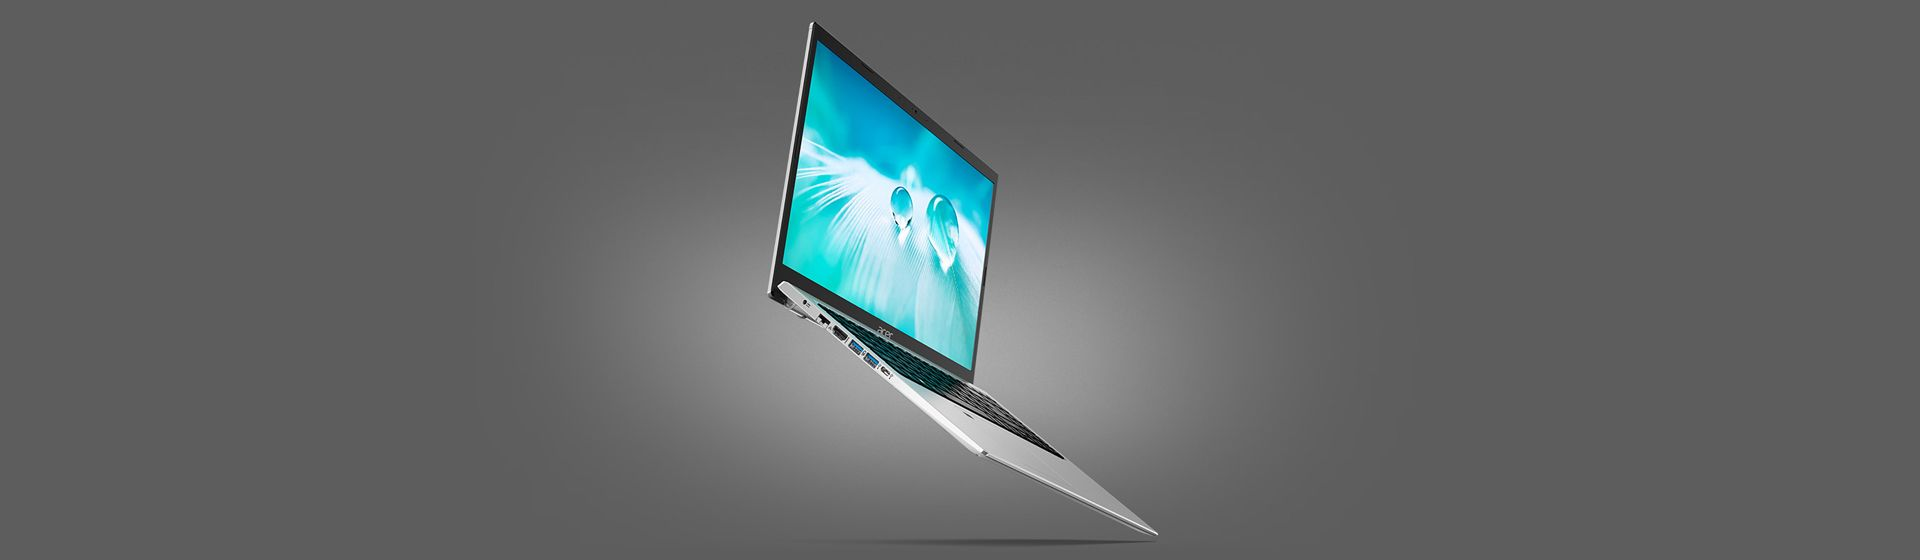 Aspire 5 vs IdeaPad S145: qual notebook com SSD comprar?